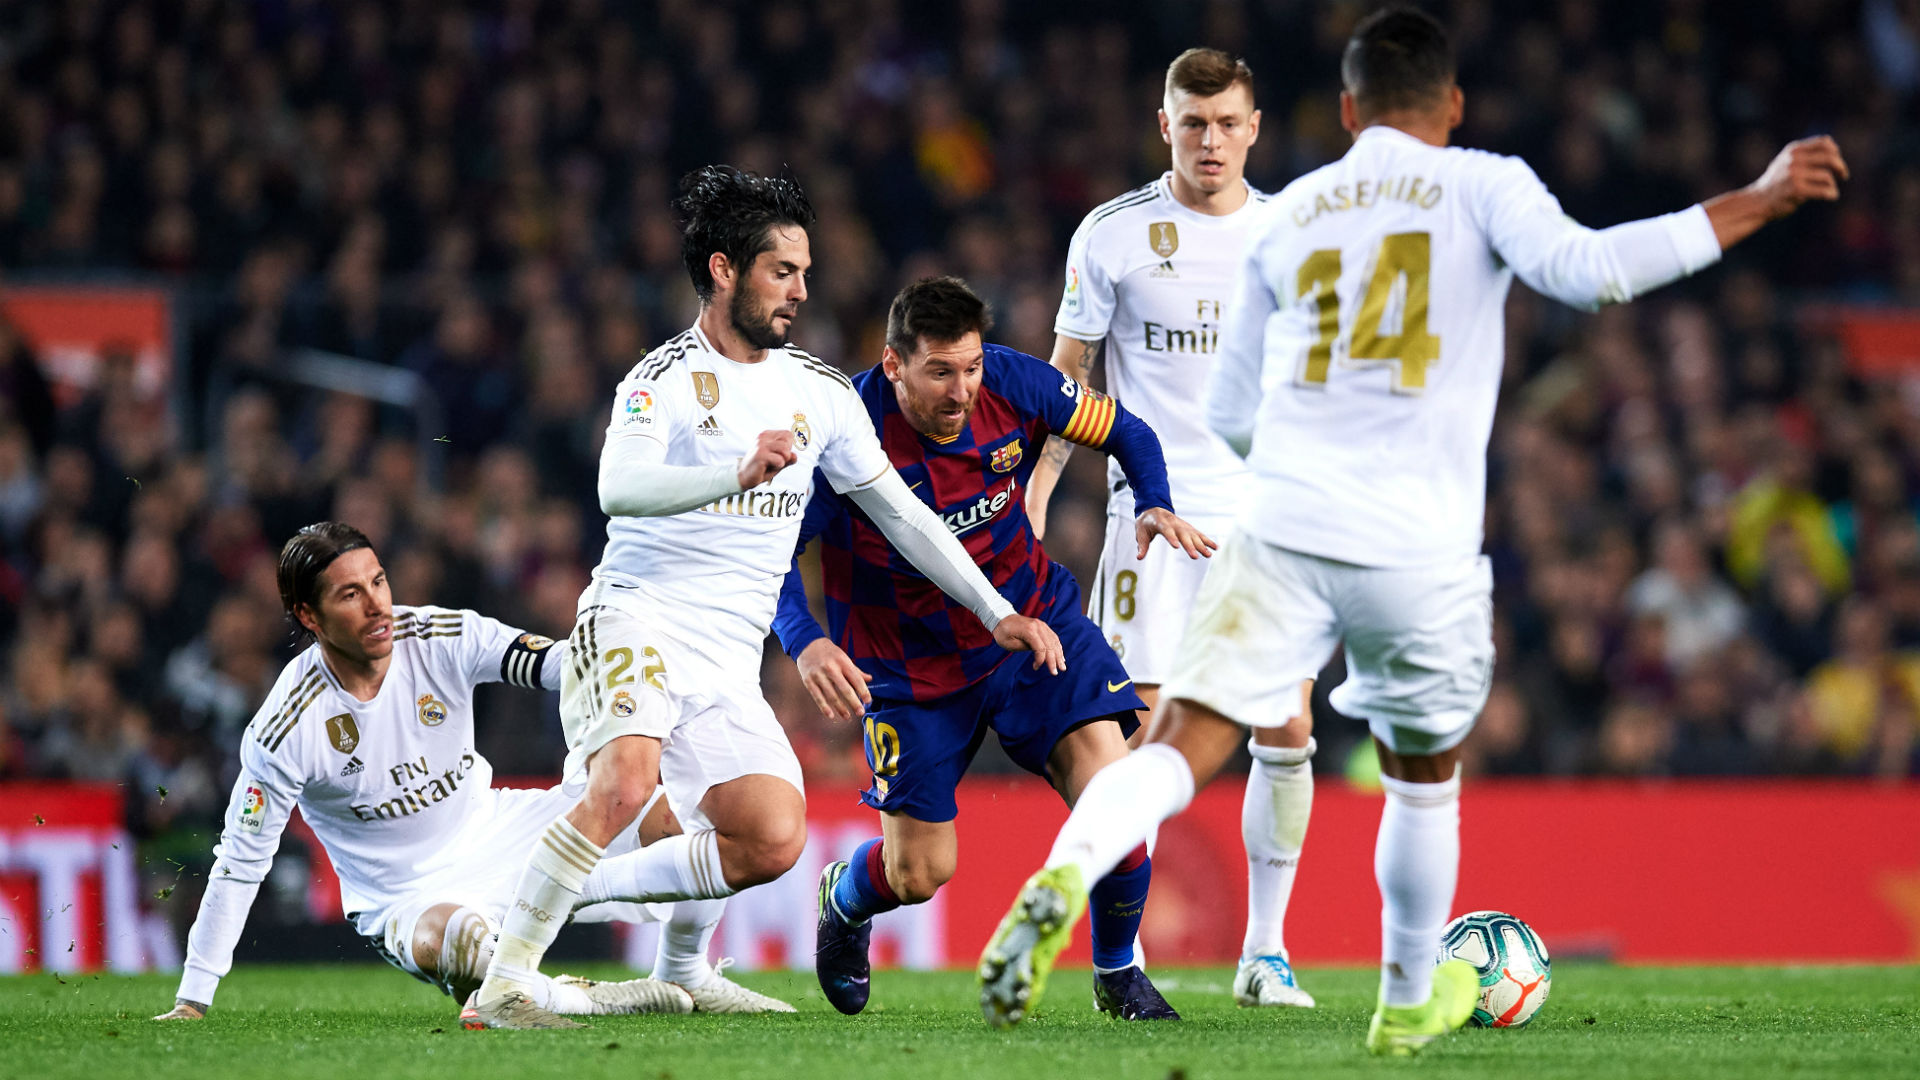 Anything can happen in El Clasico – former Real Madrid captain Hierro